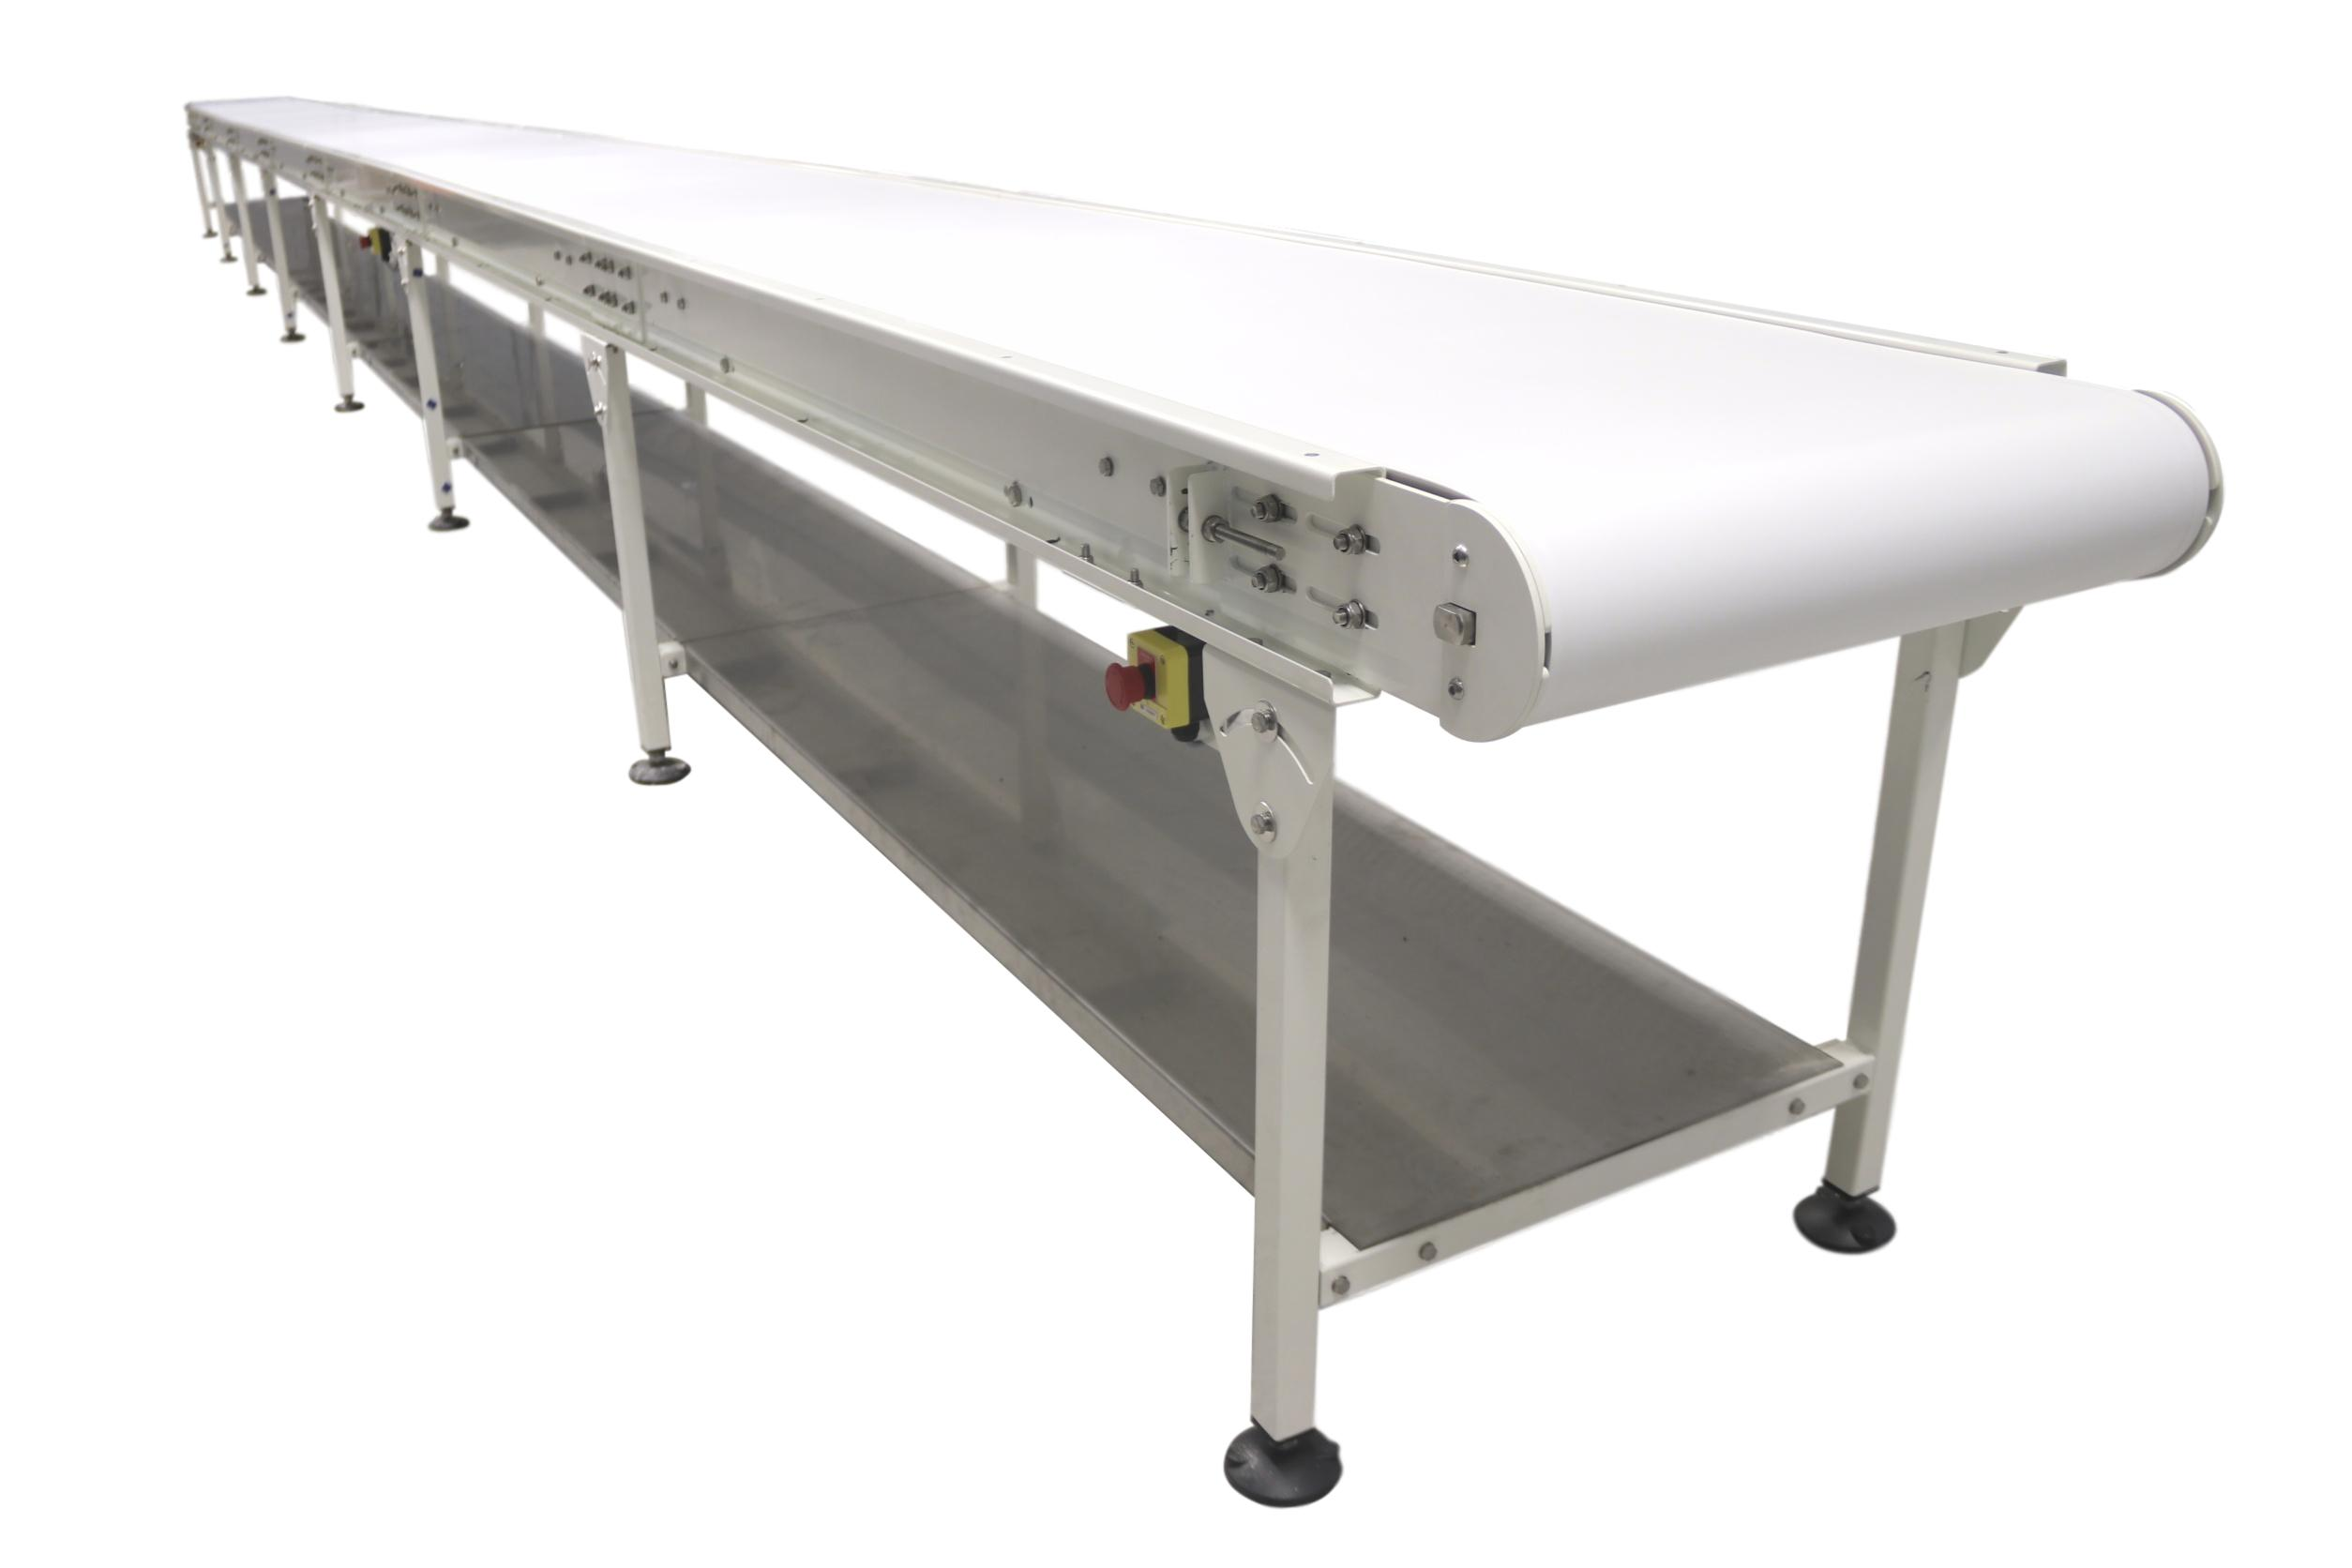 KCB 138 BELT CONVEYOR MEDIUM TO HEAVY DUTY BELT CONVEYOR CONVEYOR BELT MANUFACTURERS BELT CONVEYOR SYSTEMS